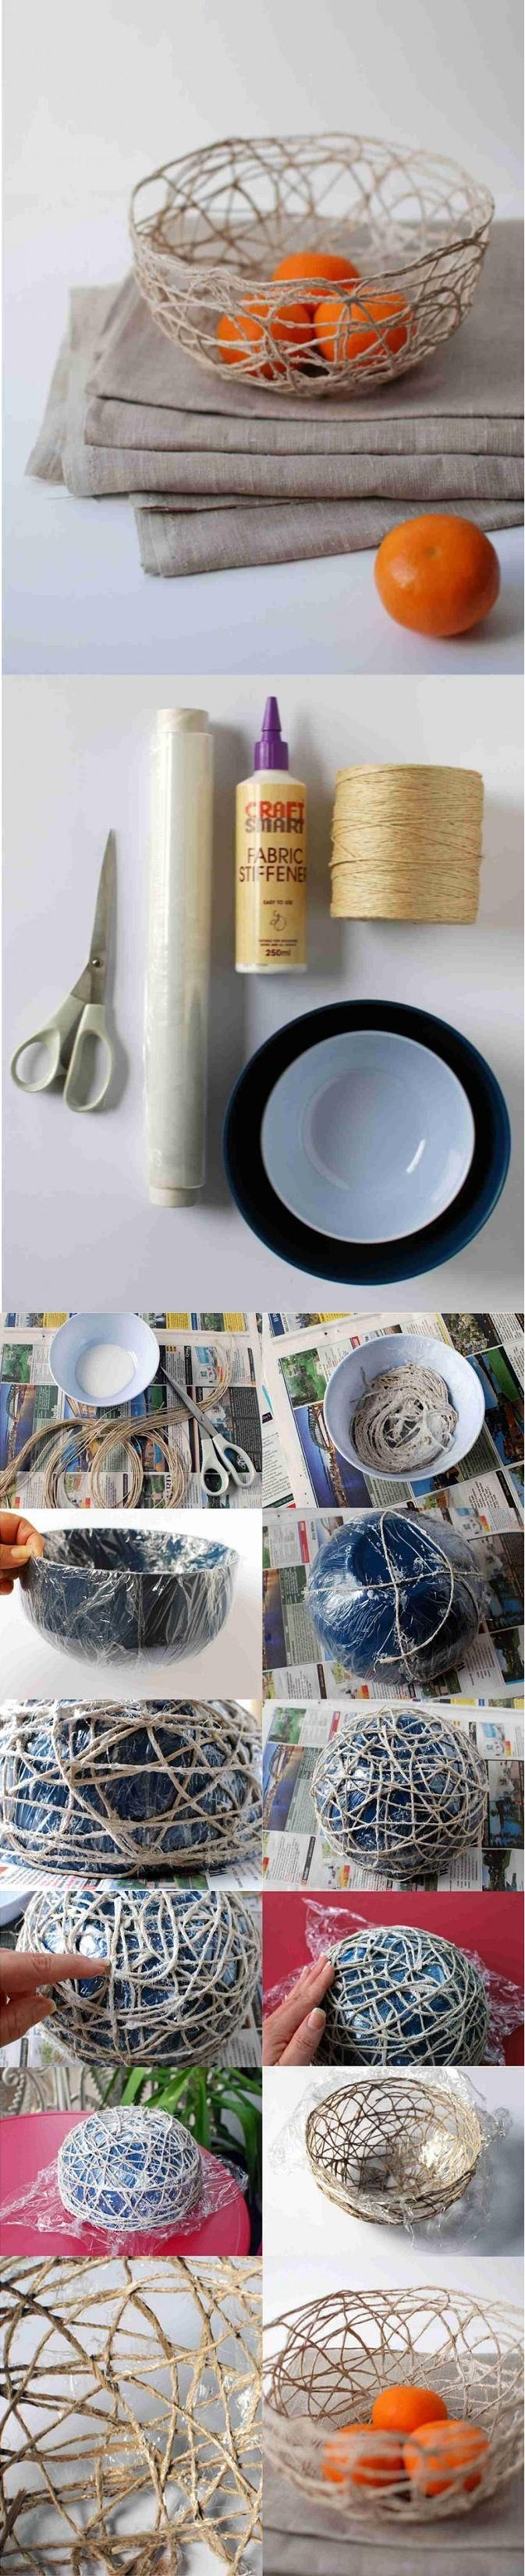 DIY String Bowl plus other great ideas for gifts